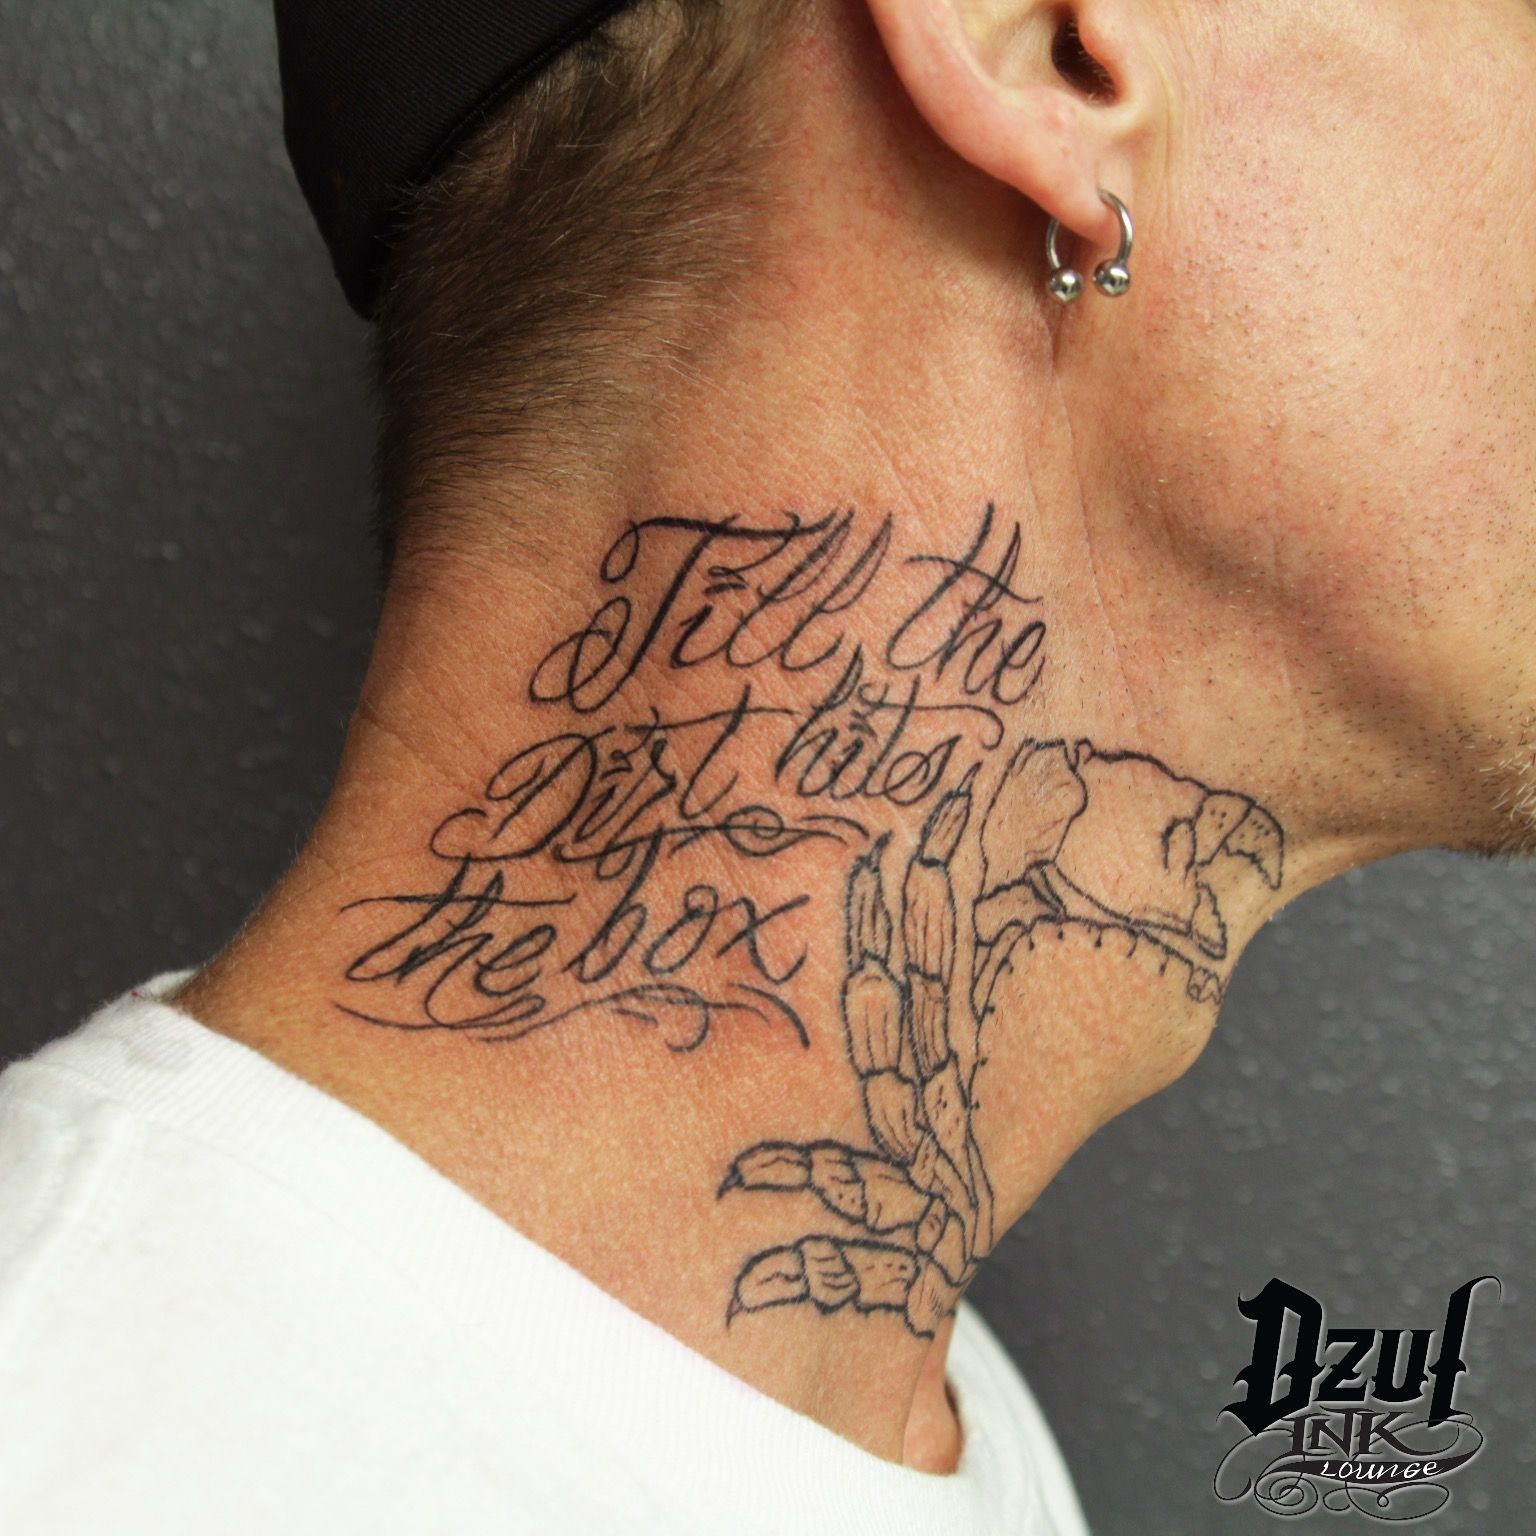 till the dirt hits the box neck progress by alex